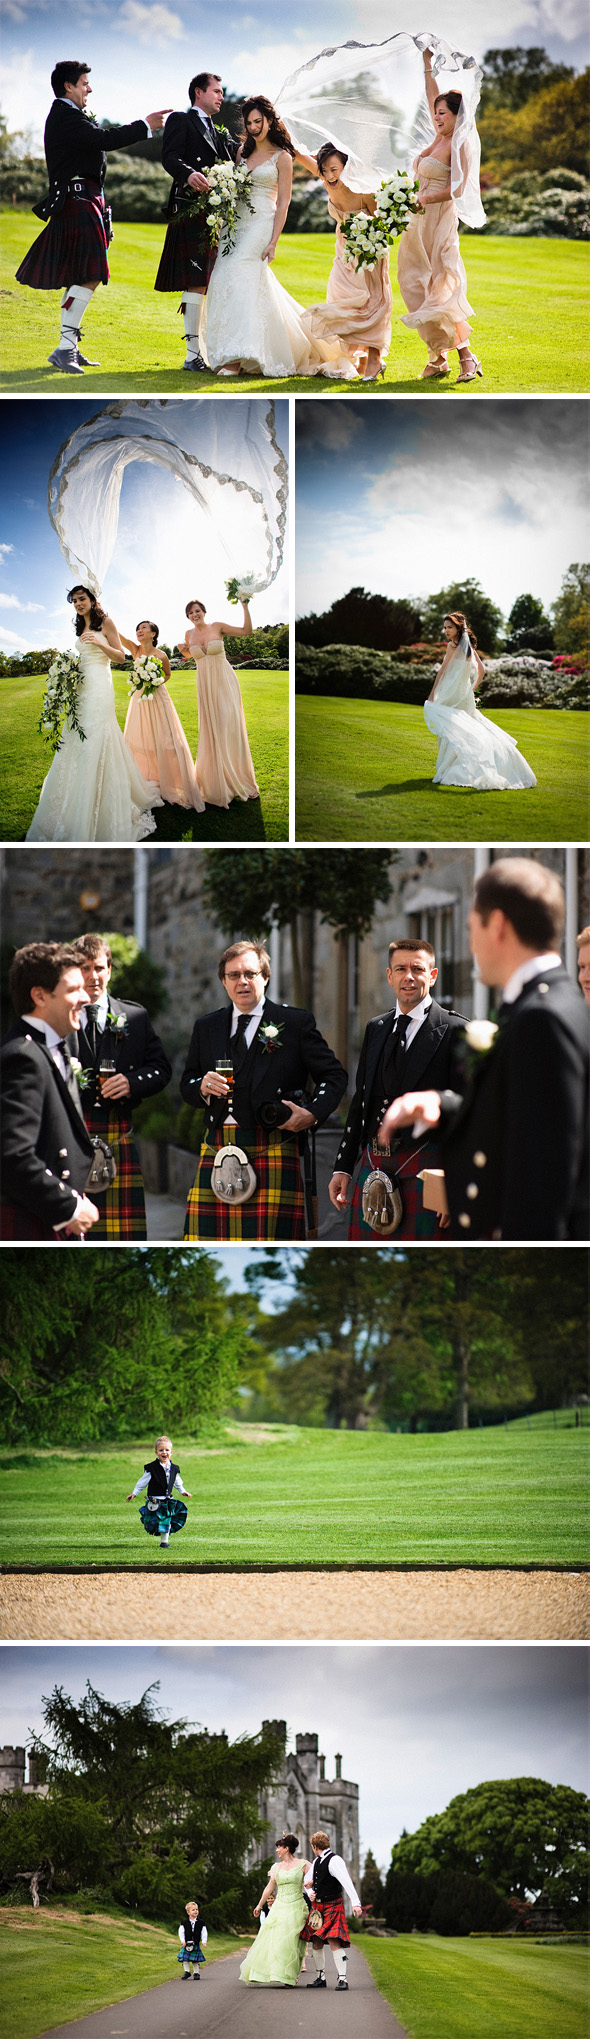 destination wedding scotland